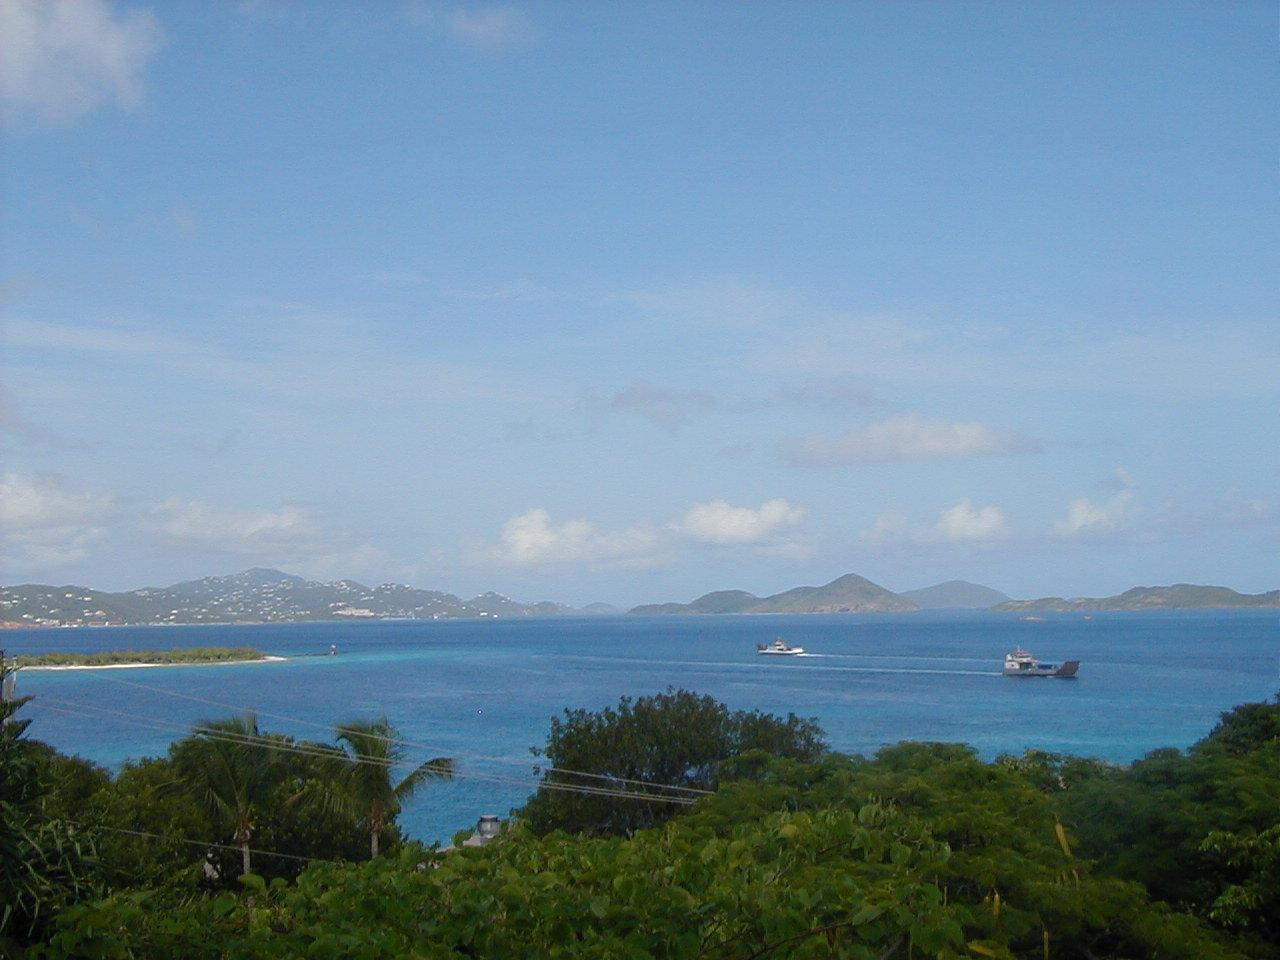 Views from site of St. Thomas